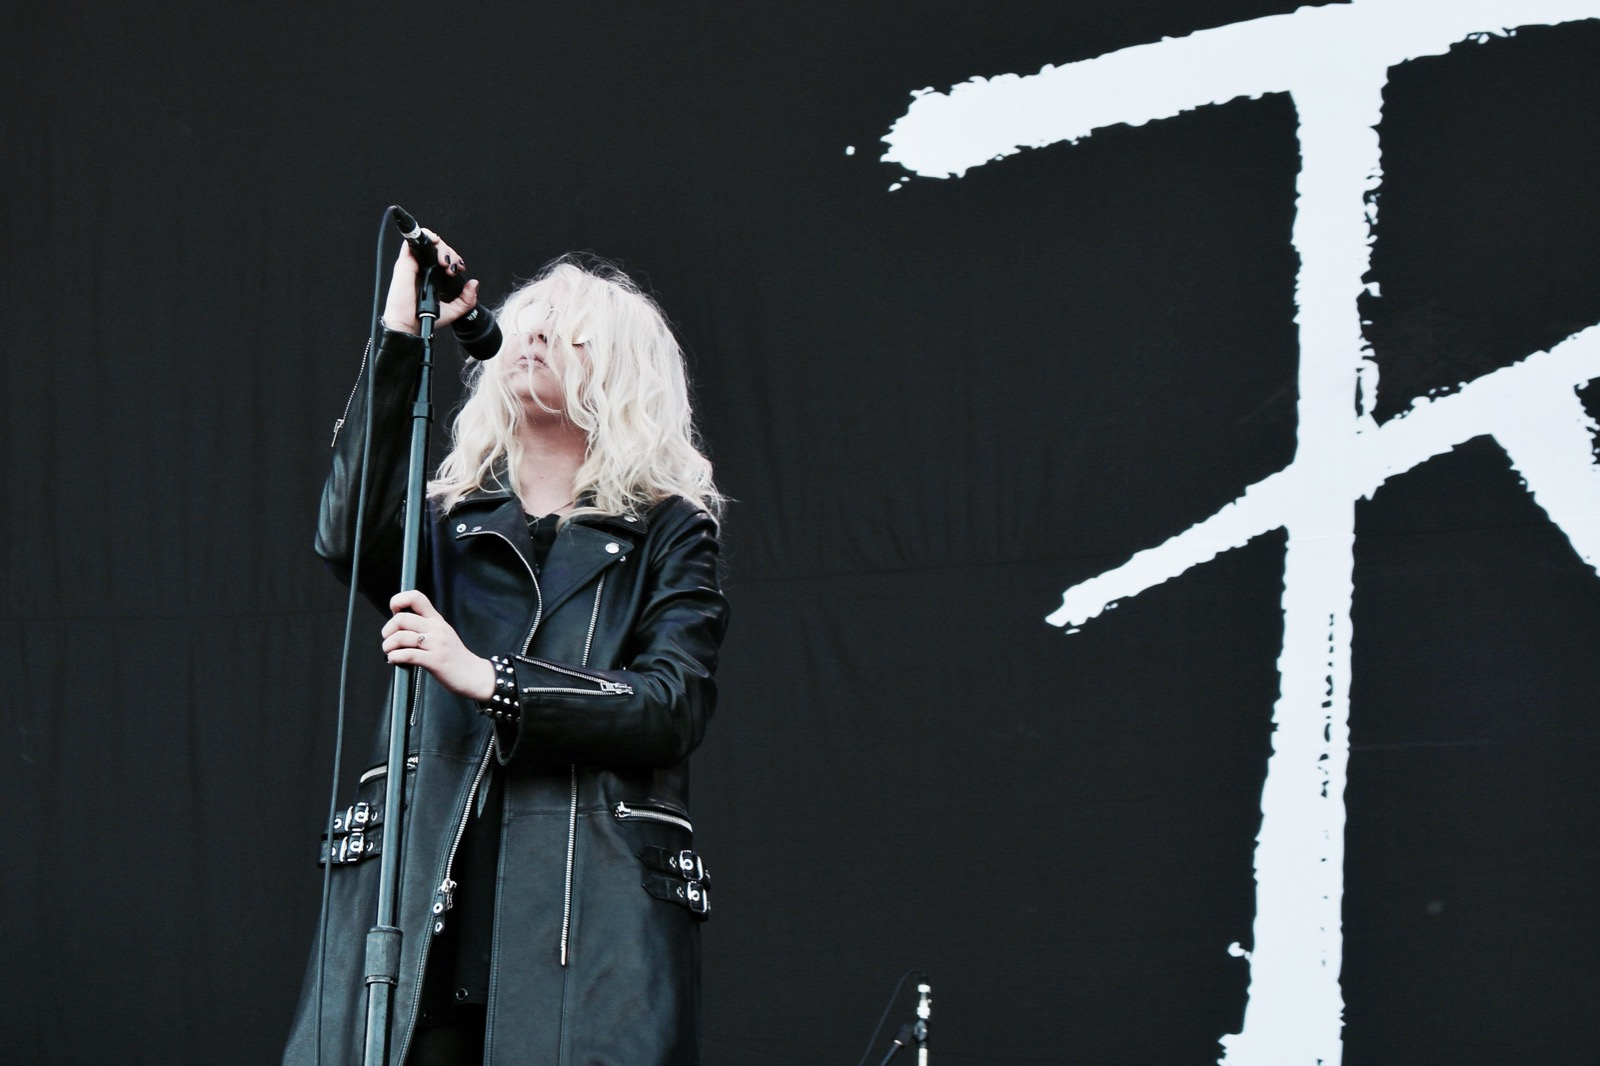 05-the-pretty-reckless-fm4-frequency-festival-2017-thexed-xedblog